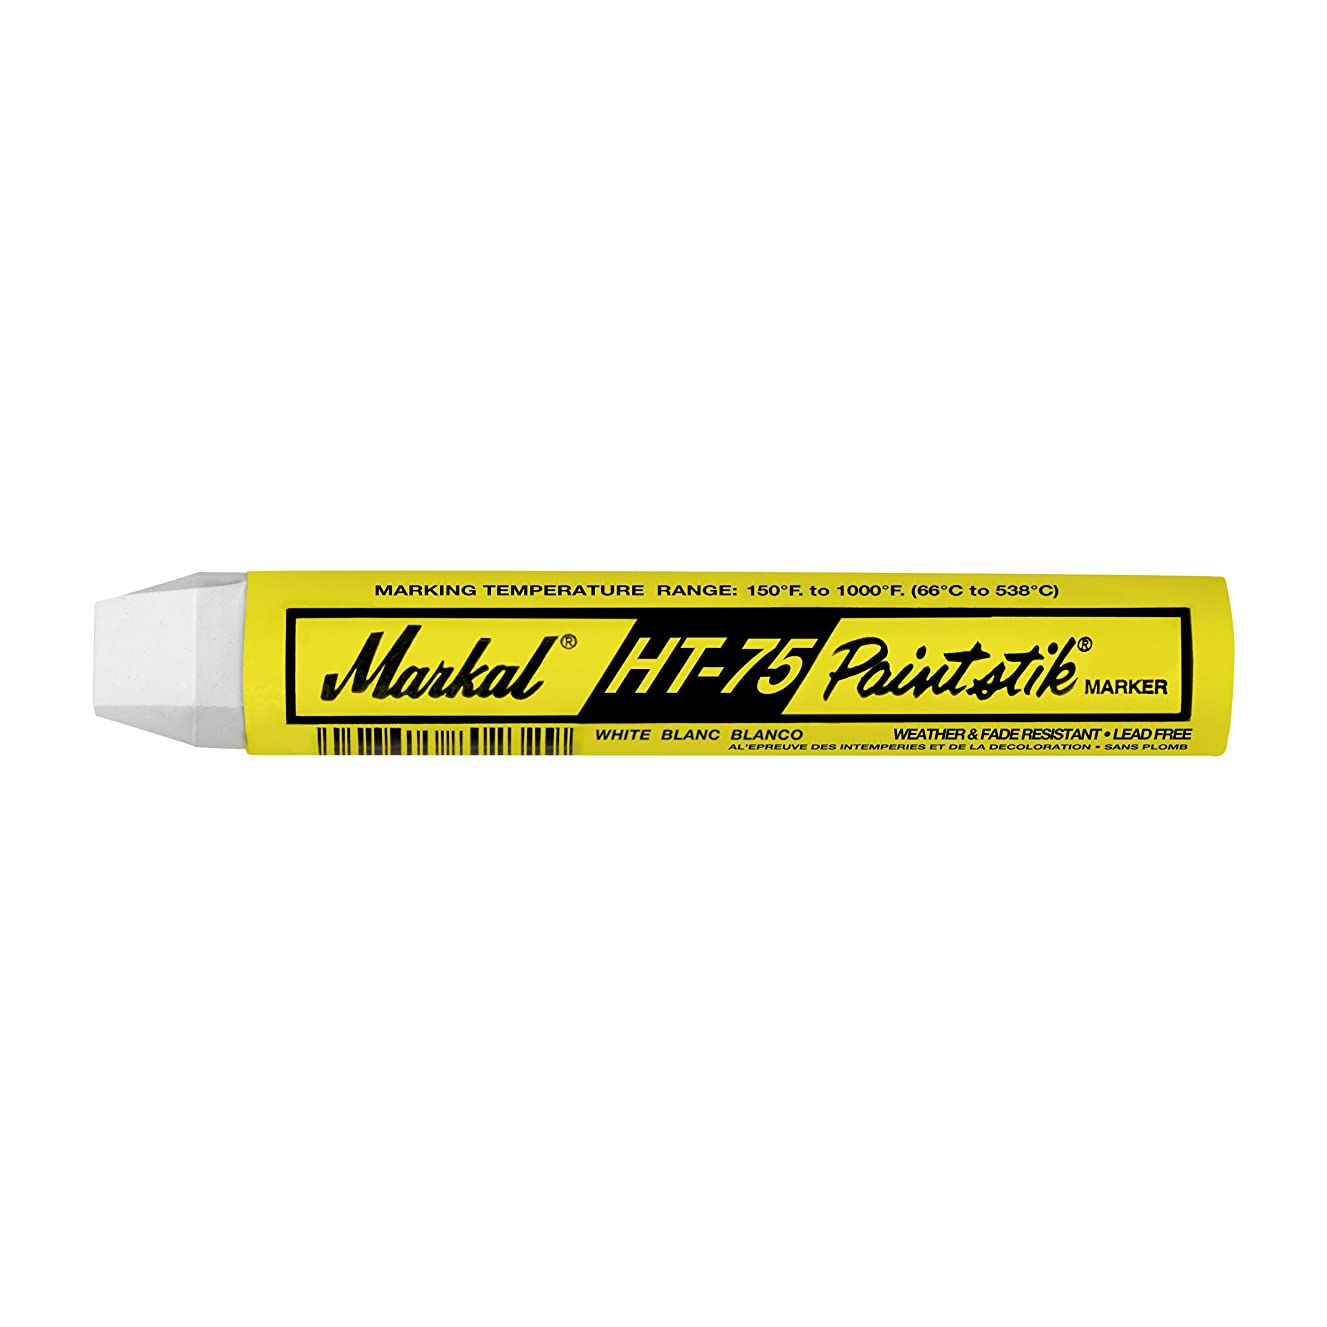 Markal 84820 HT-75 Paintstik Solid Paint Red Hot Surface Marker (200 F - 1000 F), White (Pack of 12)